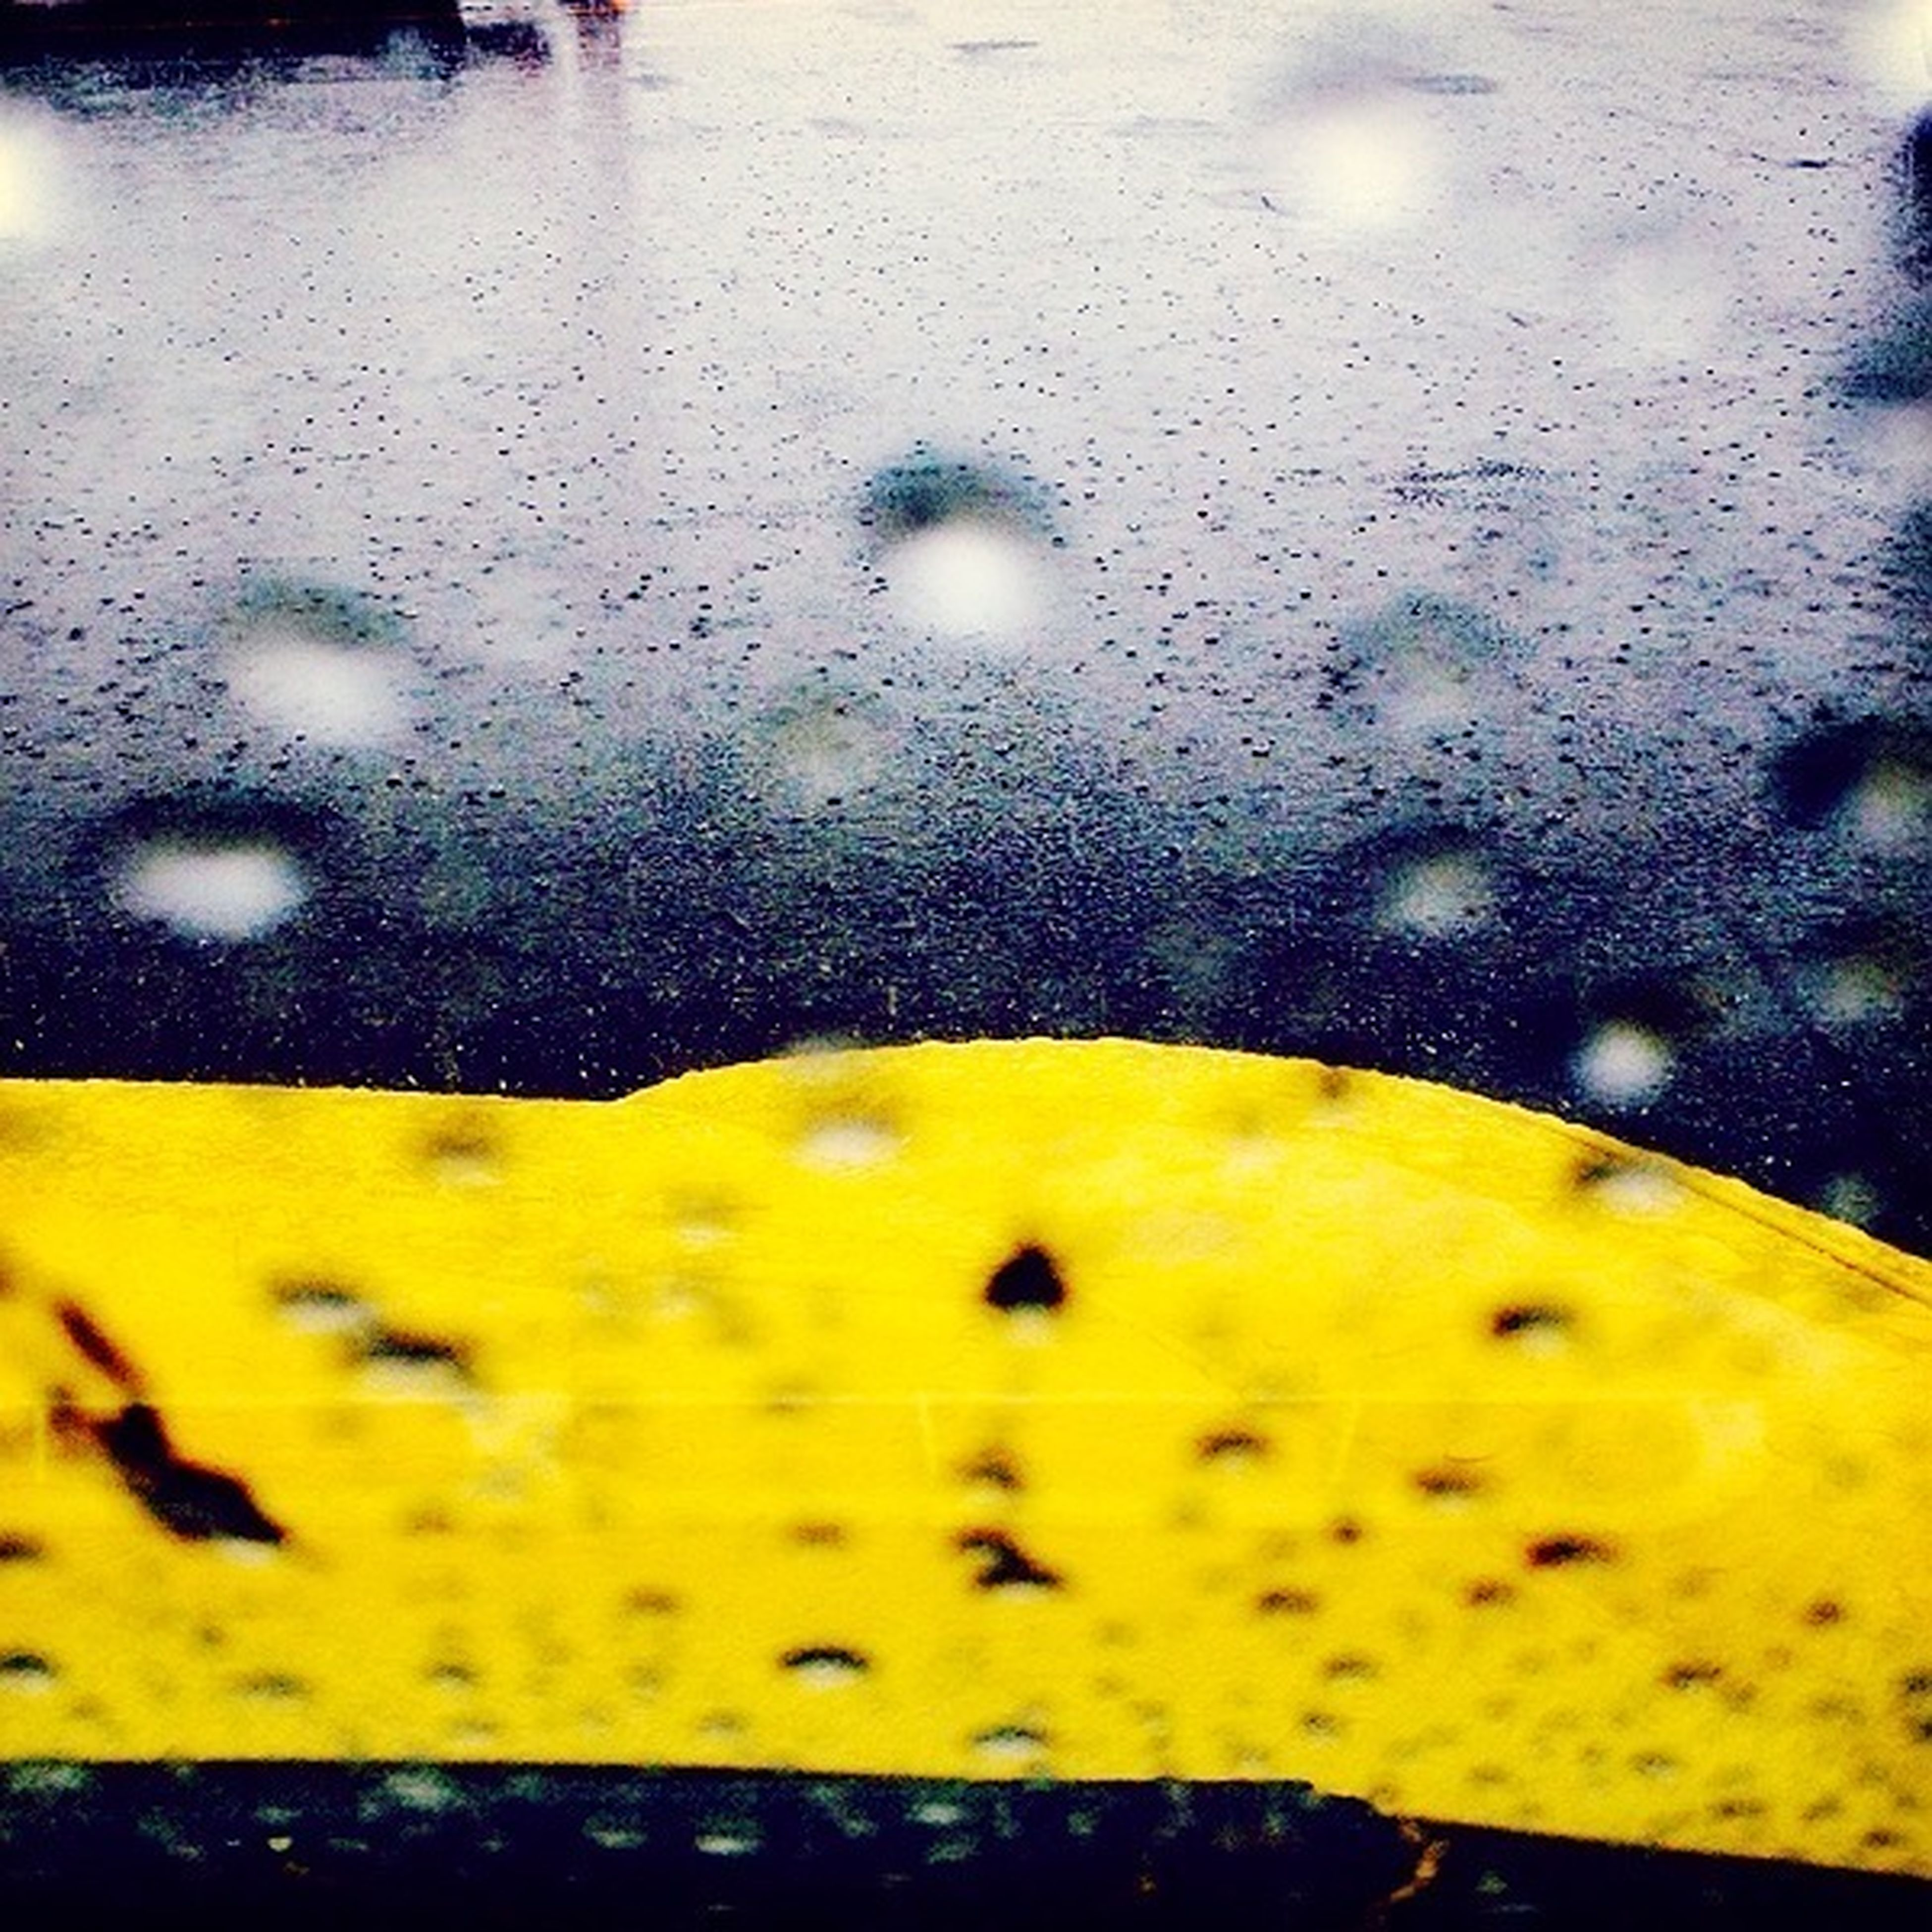 yellow, wet, water, drop, close-up, window, glass - material, season, transparent, freshness, rain, indoors, focus on foreground, weather, glass, no people, raindrop, day, reflection